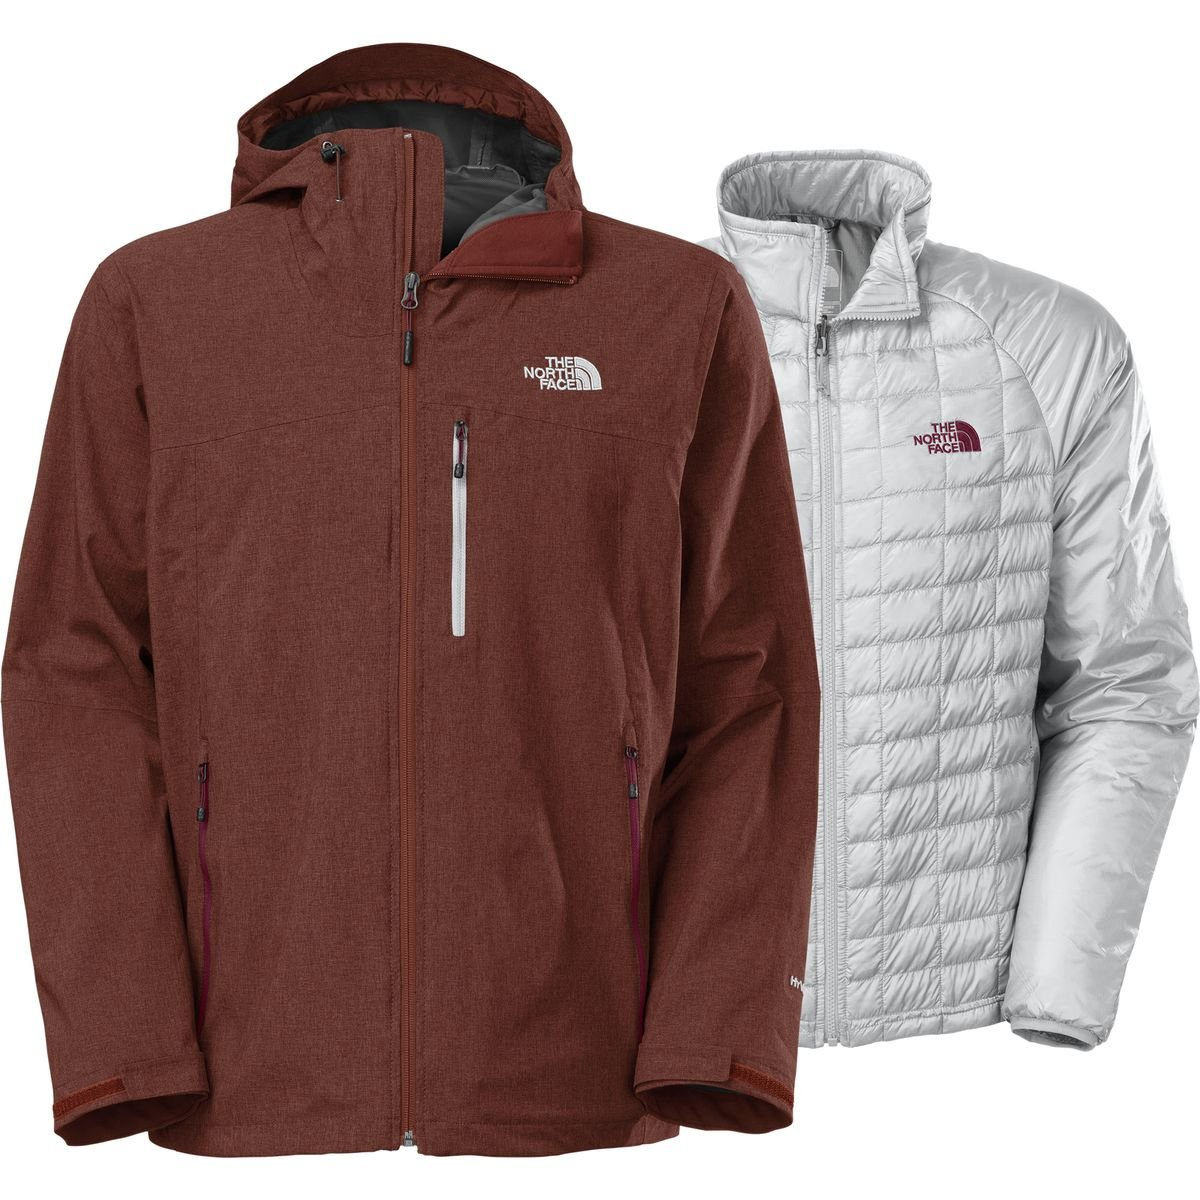 THE NORTH FACE Herren Doppeljacke Thermoball Triclimate jetzt kaufen